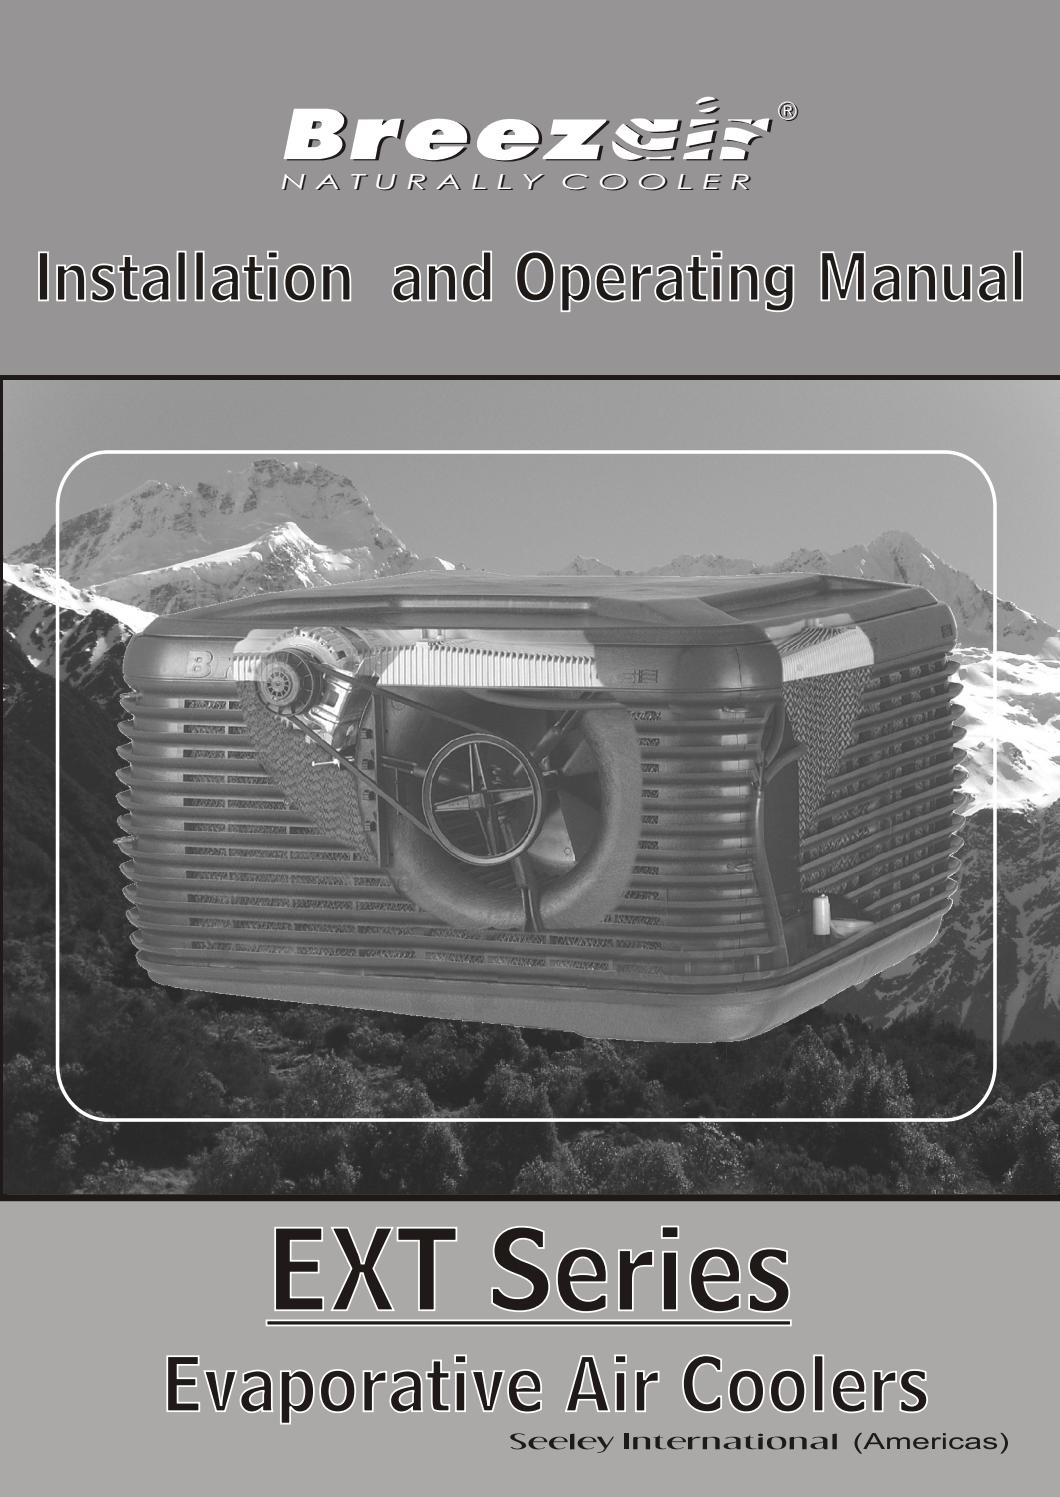 Breezair EXT Series Owner's Manual - English by Seeley